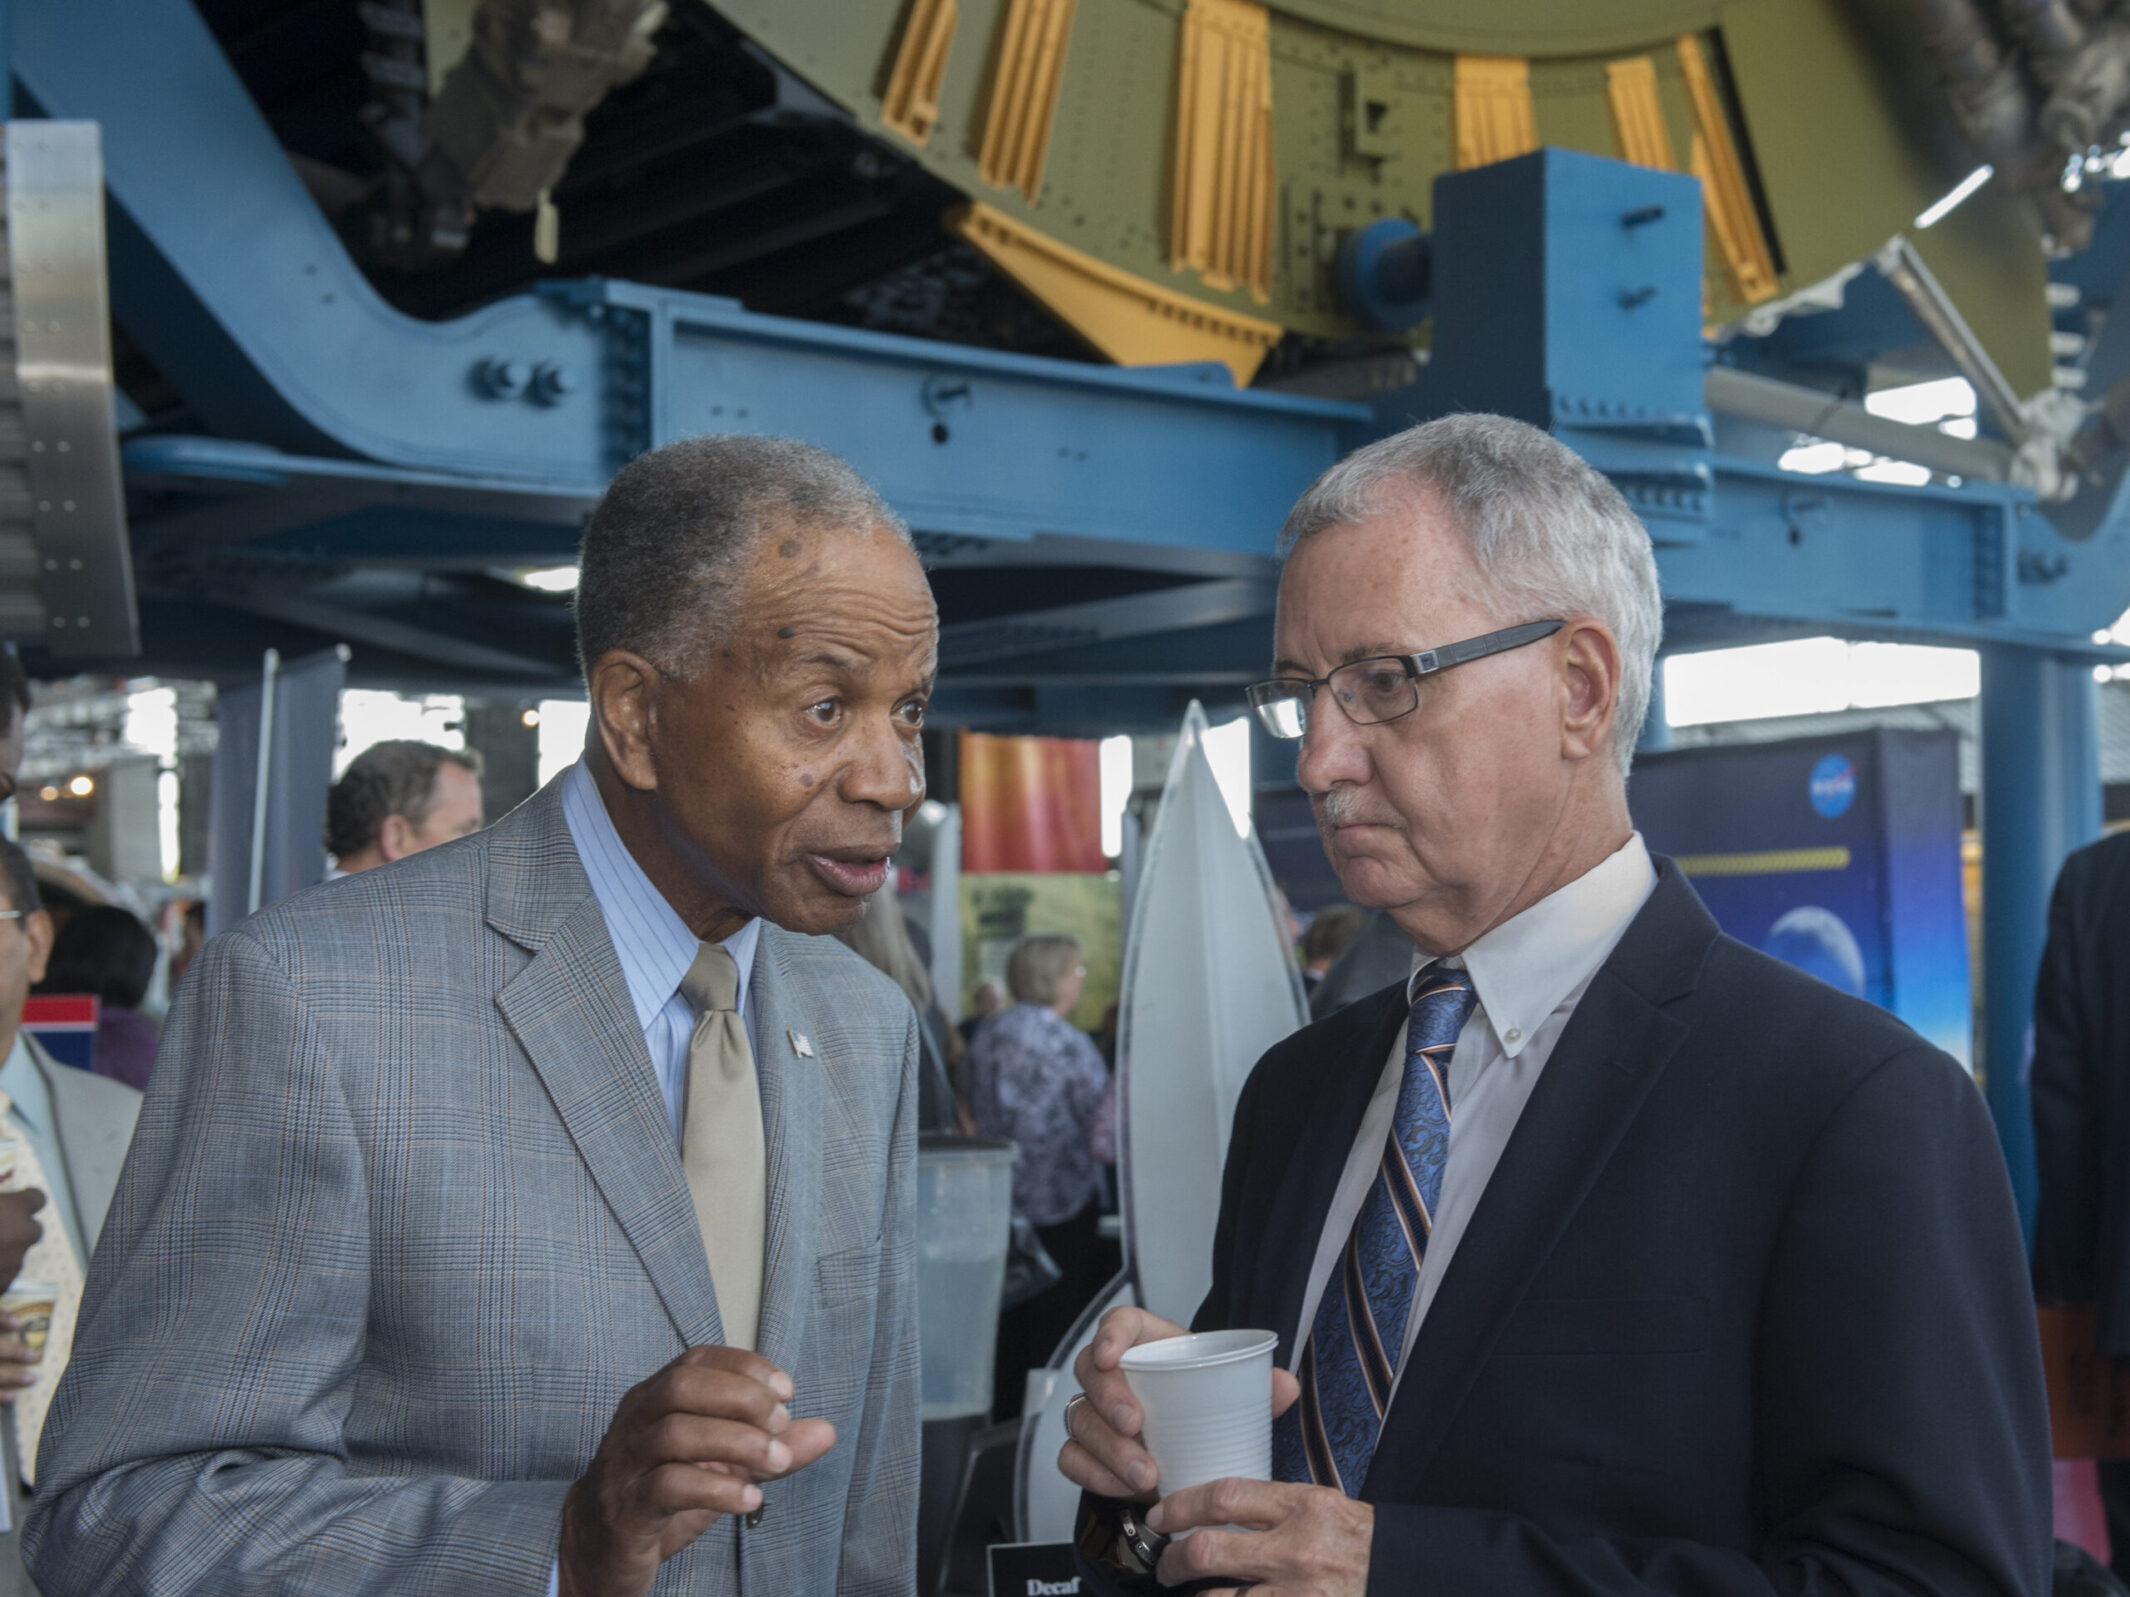 Dr. Marvin Carroll, left, president of Tec-Masters Inc. of Huntsville, speaks with David Brock, small business specialist at Marshall.